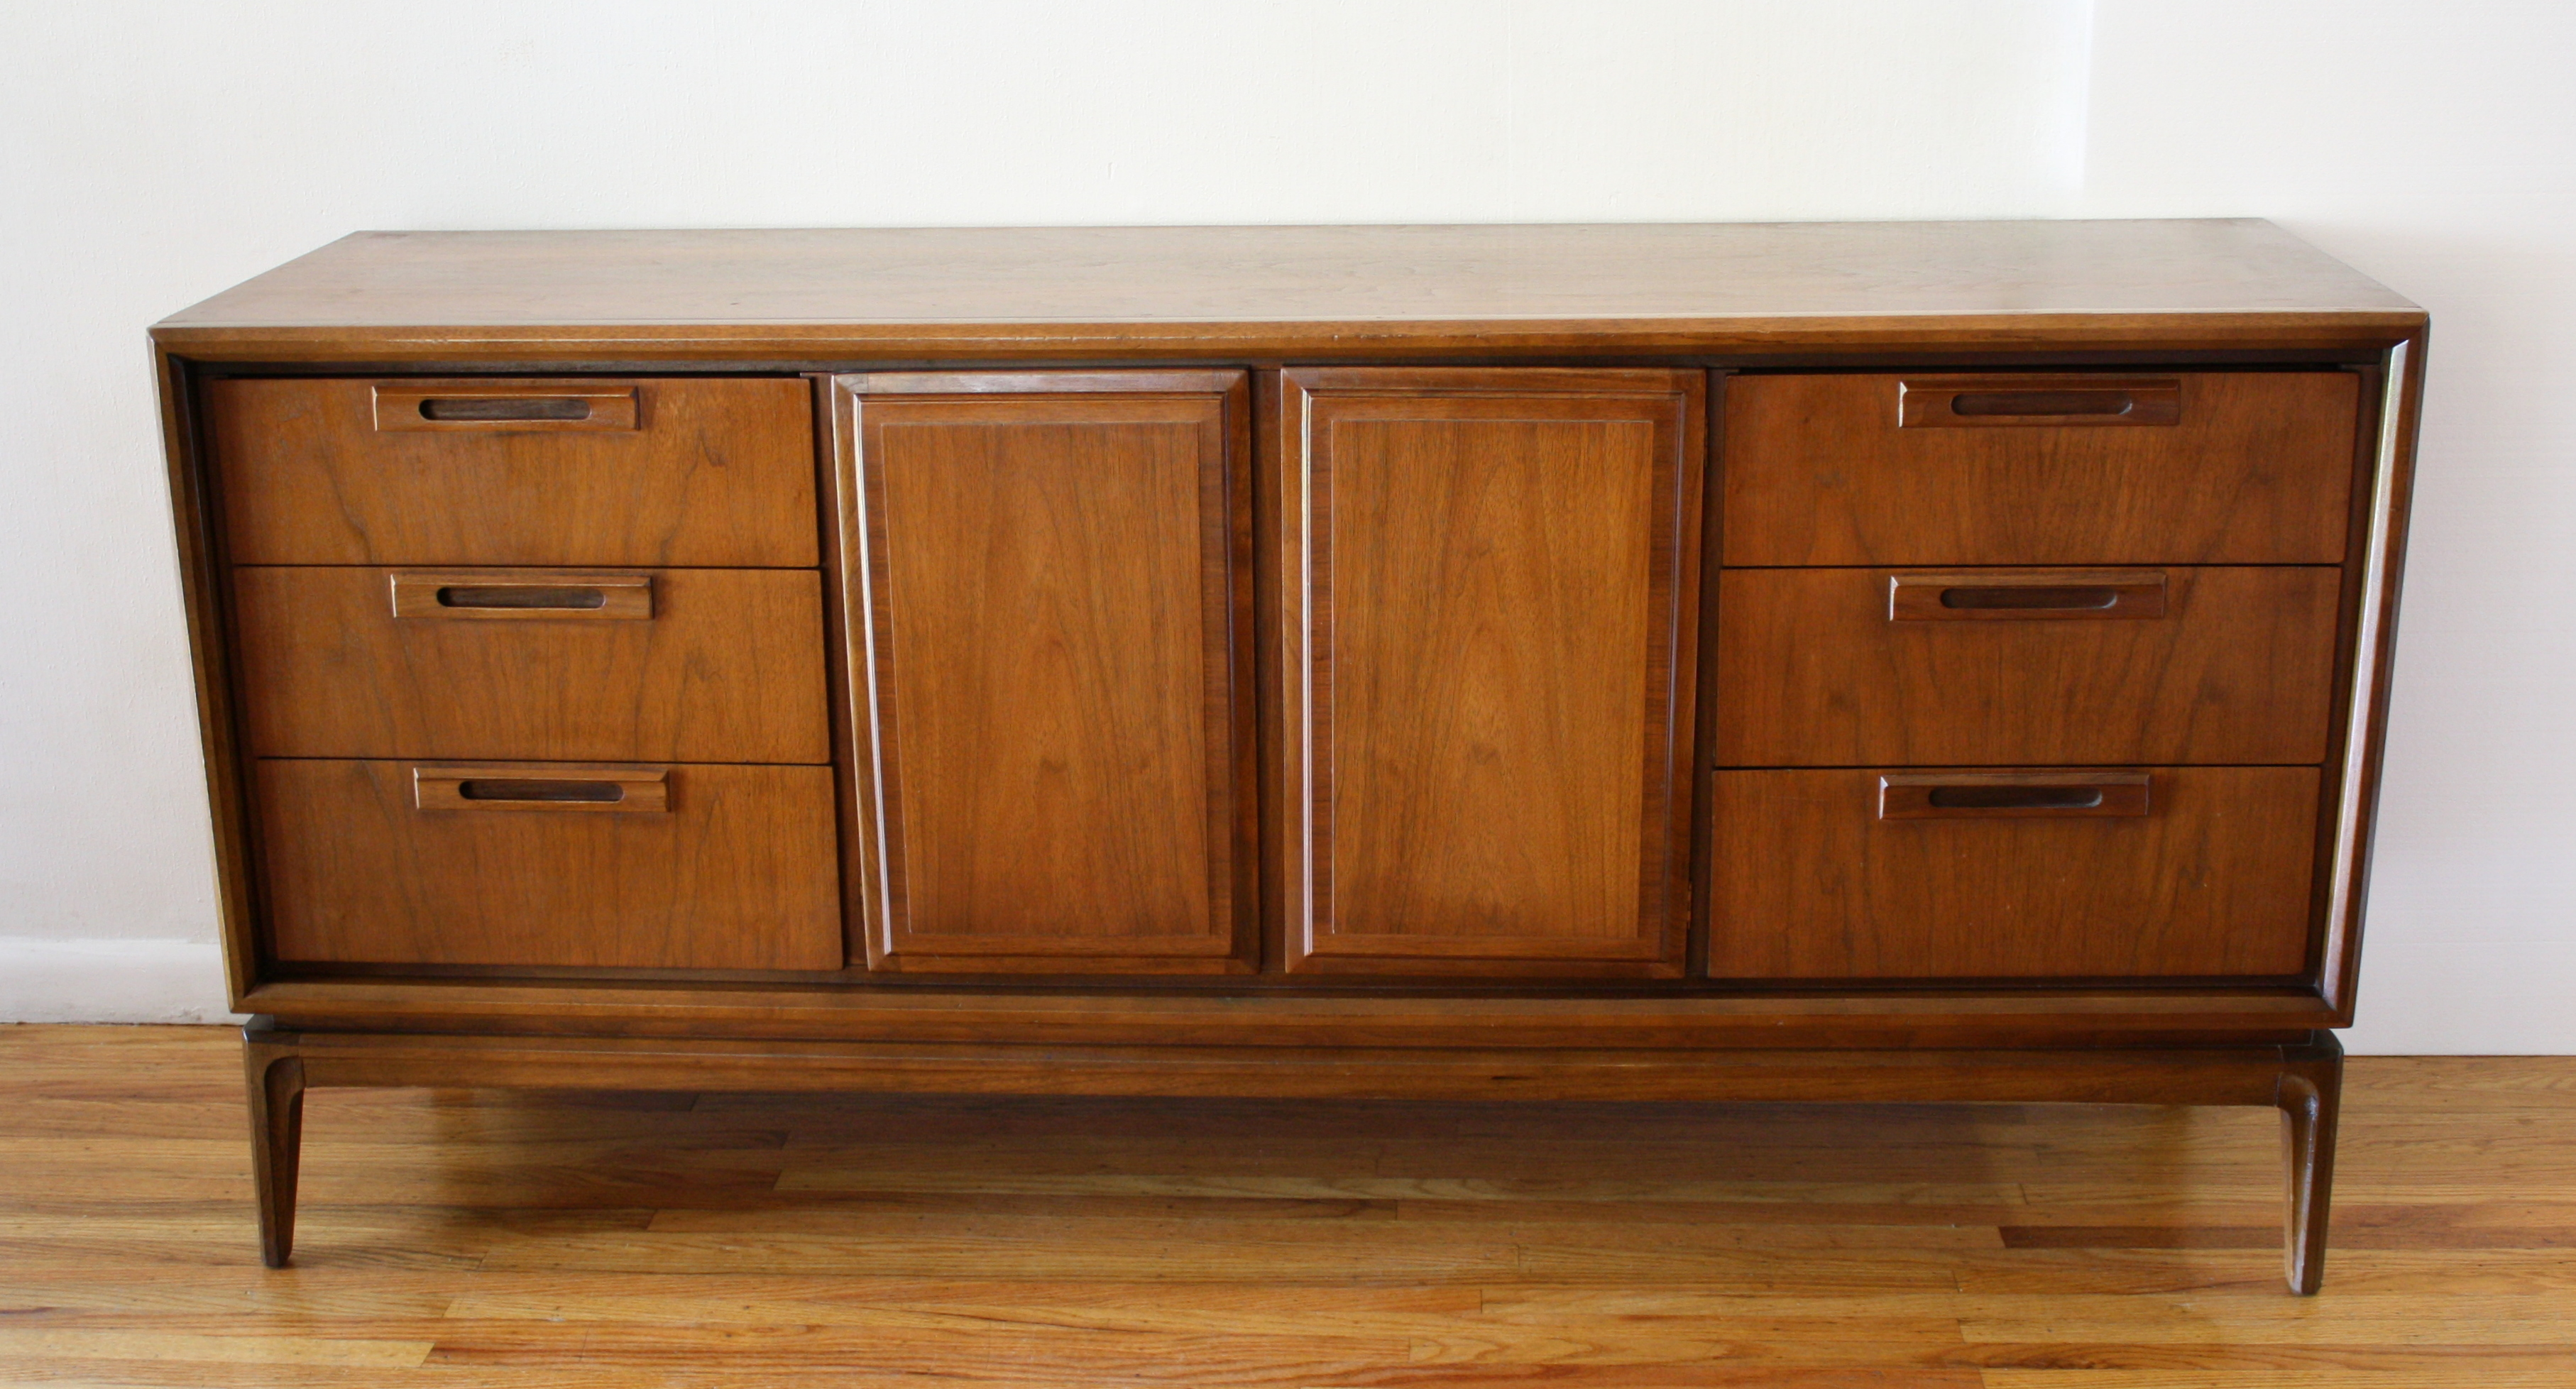 mcm credenza with middle cabinet 1.JPG